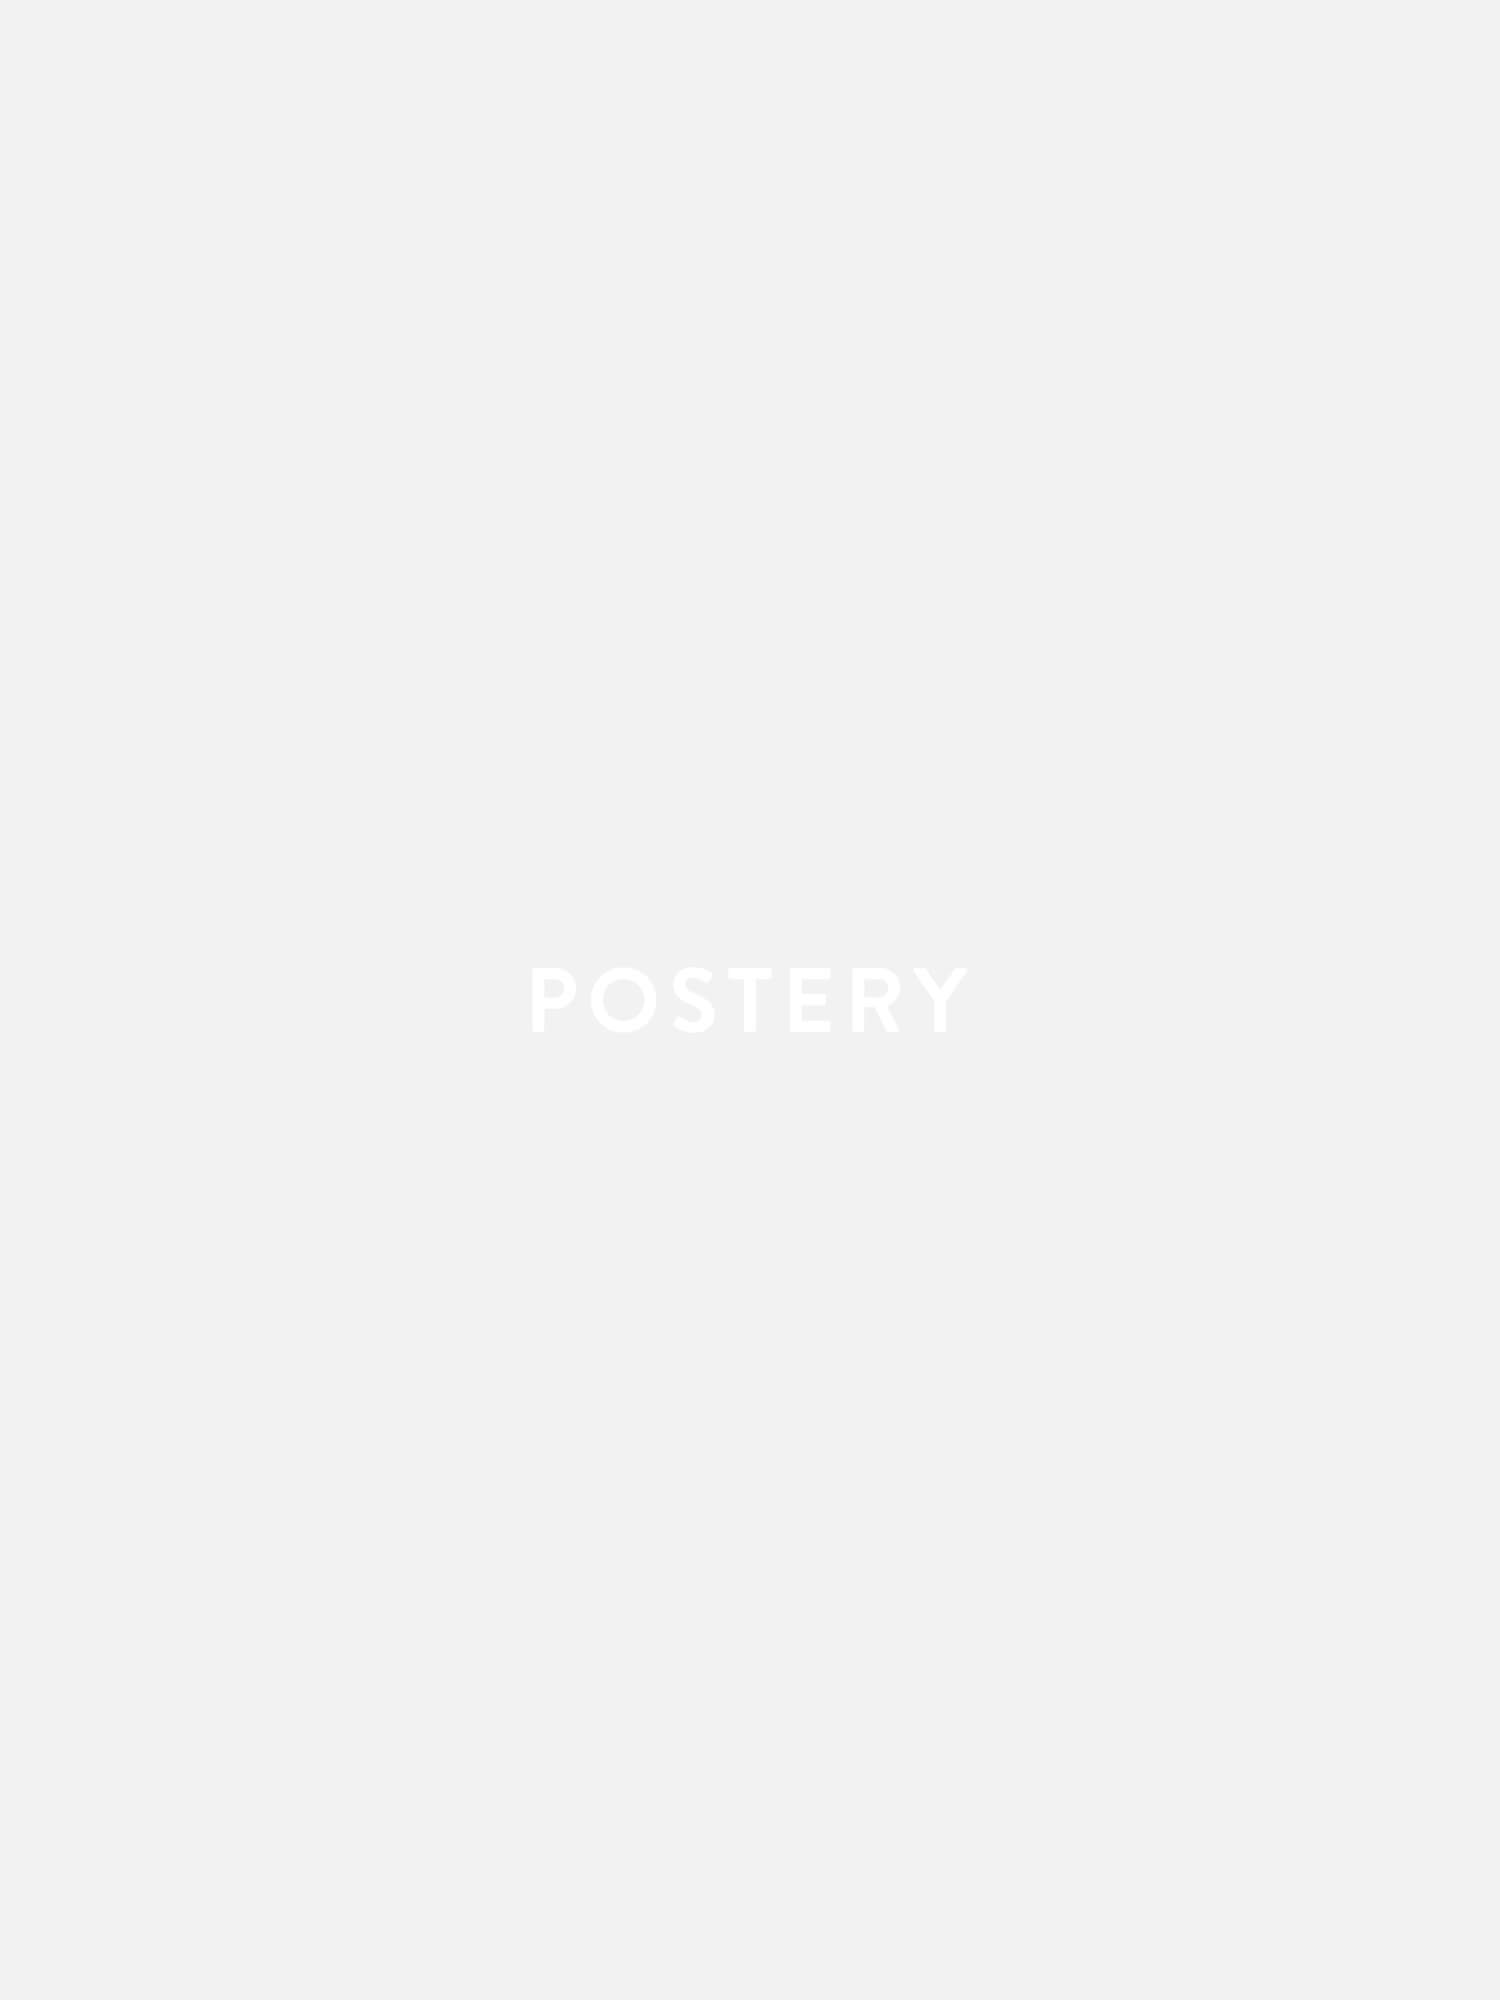 Harmonic Palm Leaves no.1 Poster